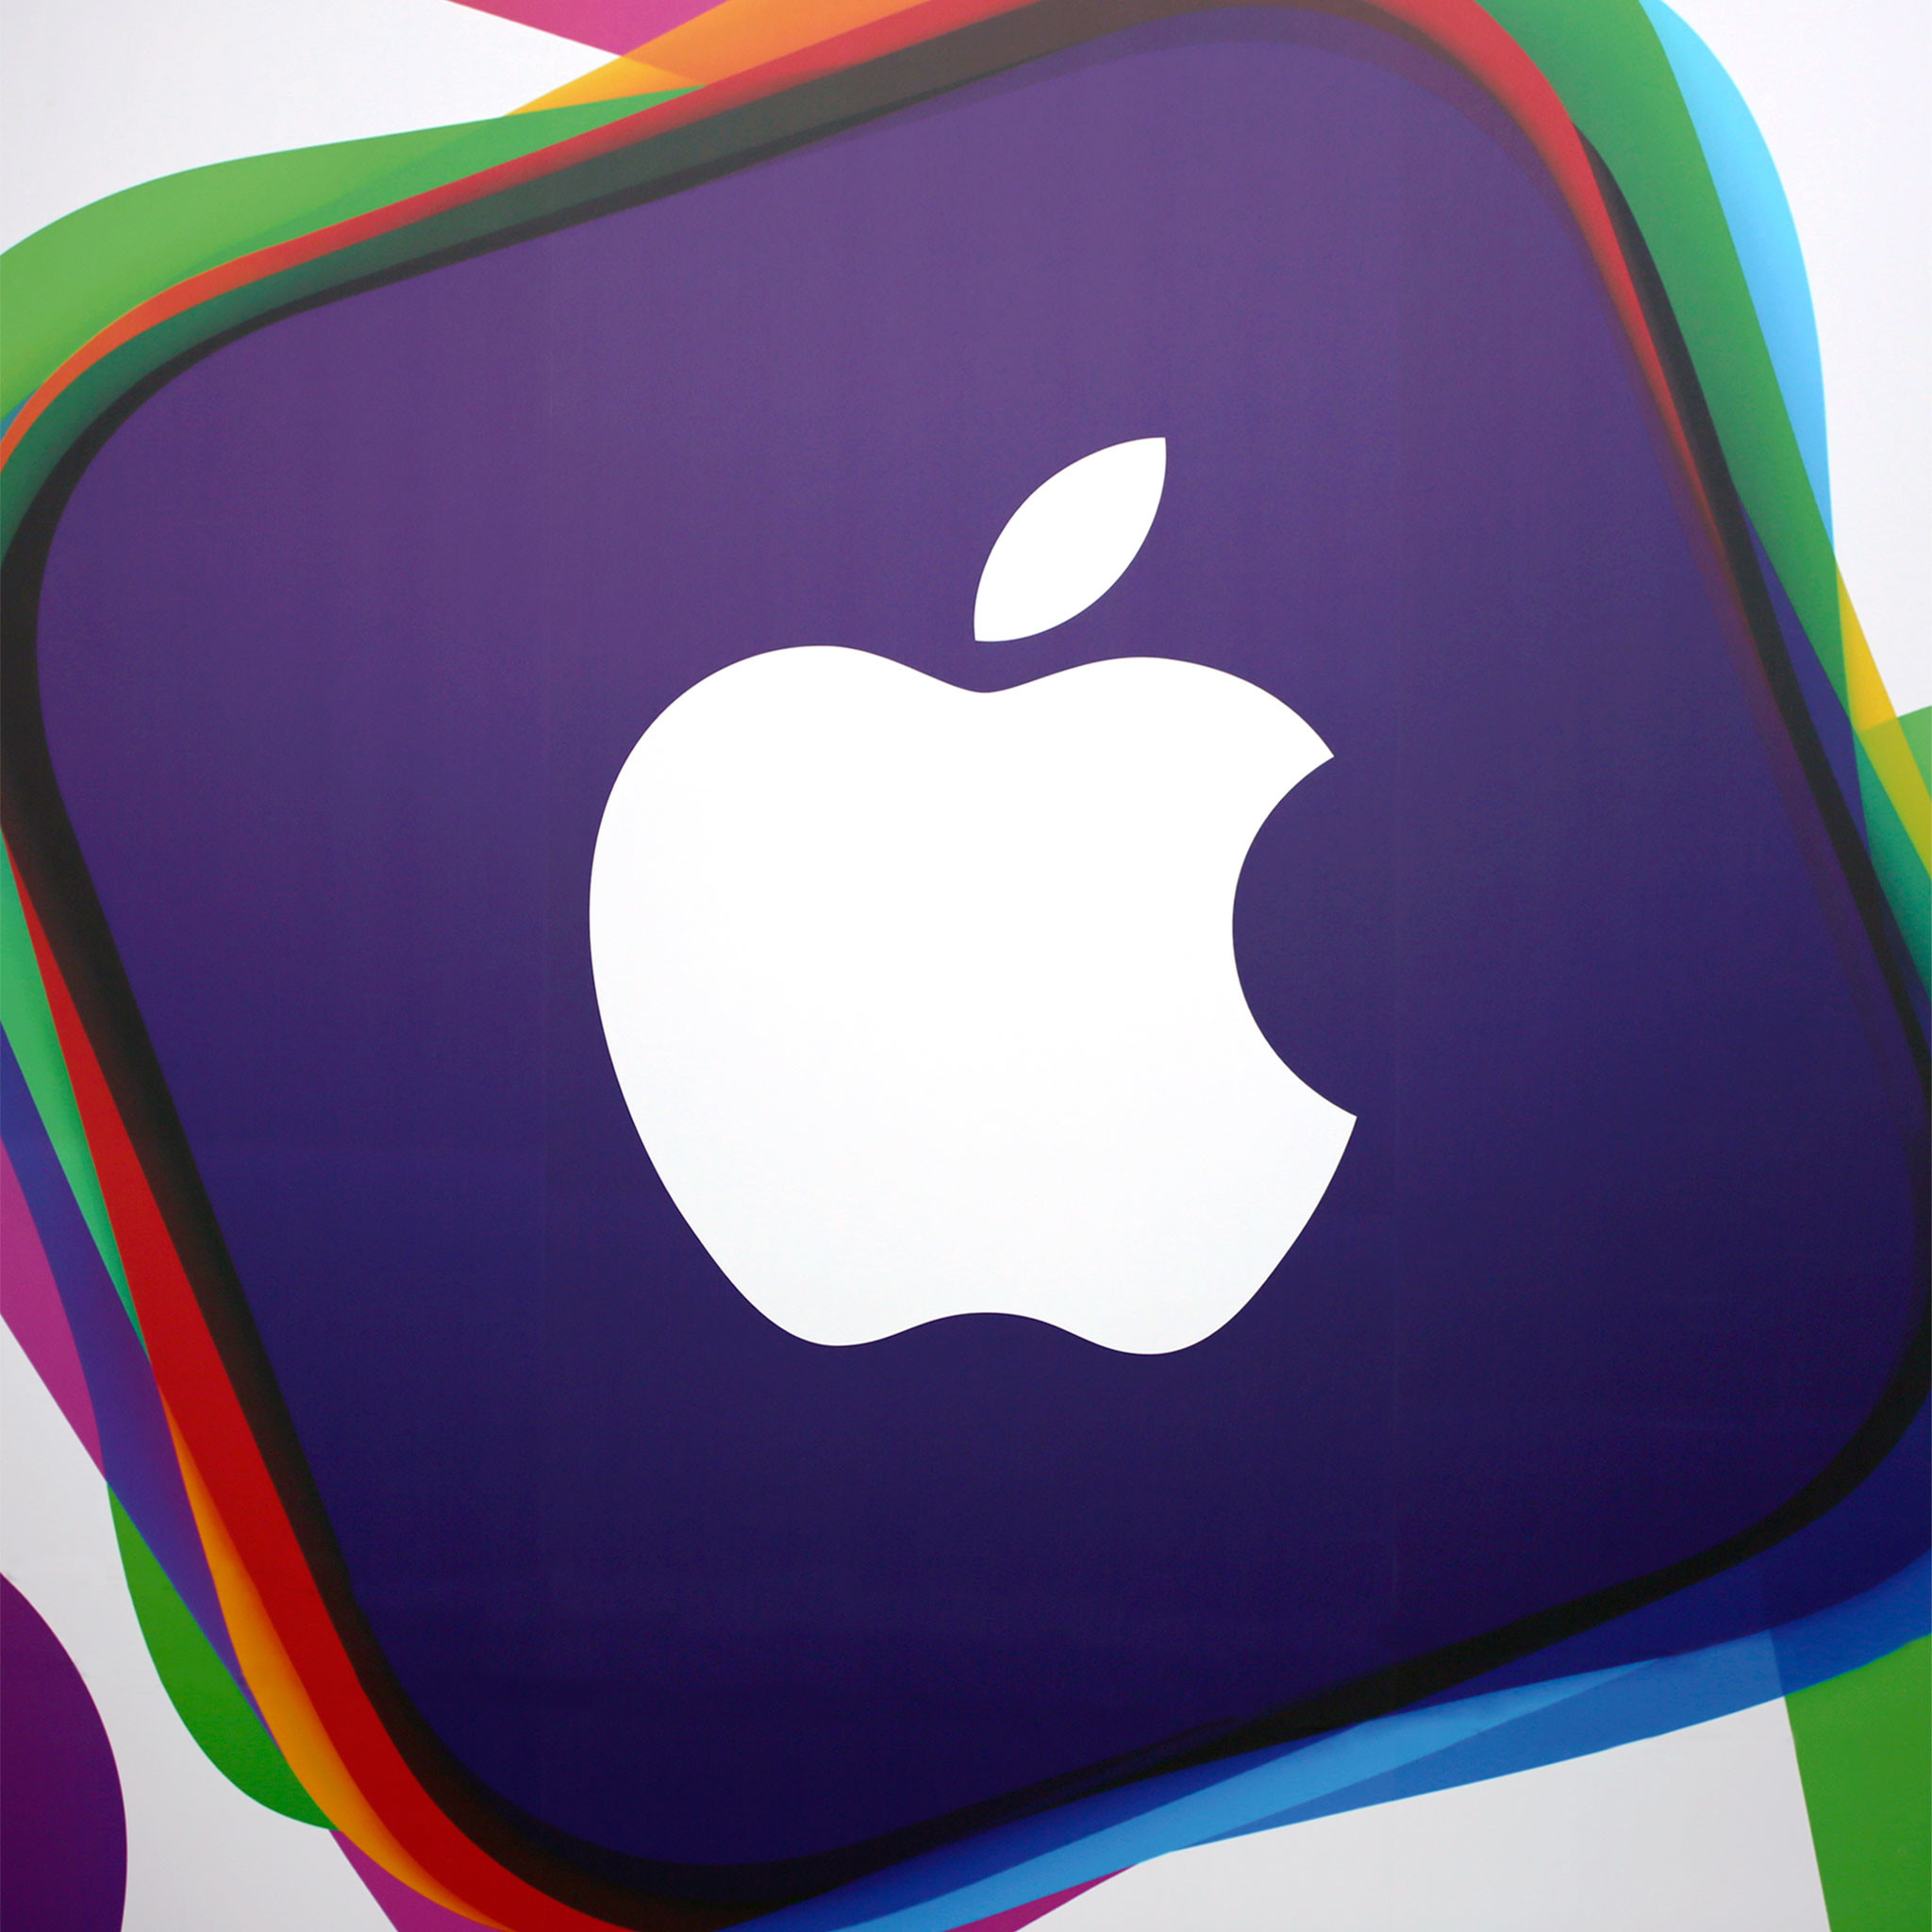 iOS 7 dots, OS X 10.9 wave, and more WWDC 2013 banners — plus wallpaper!